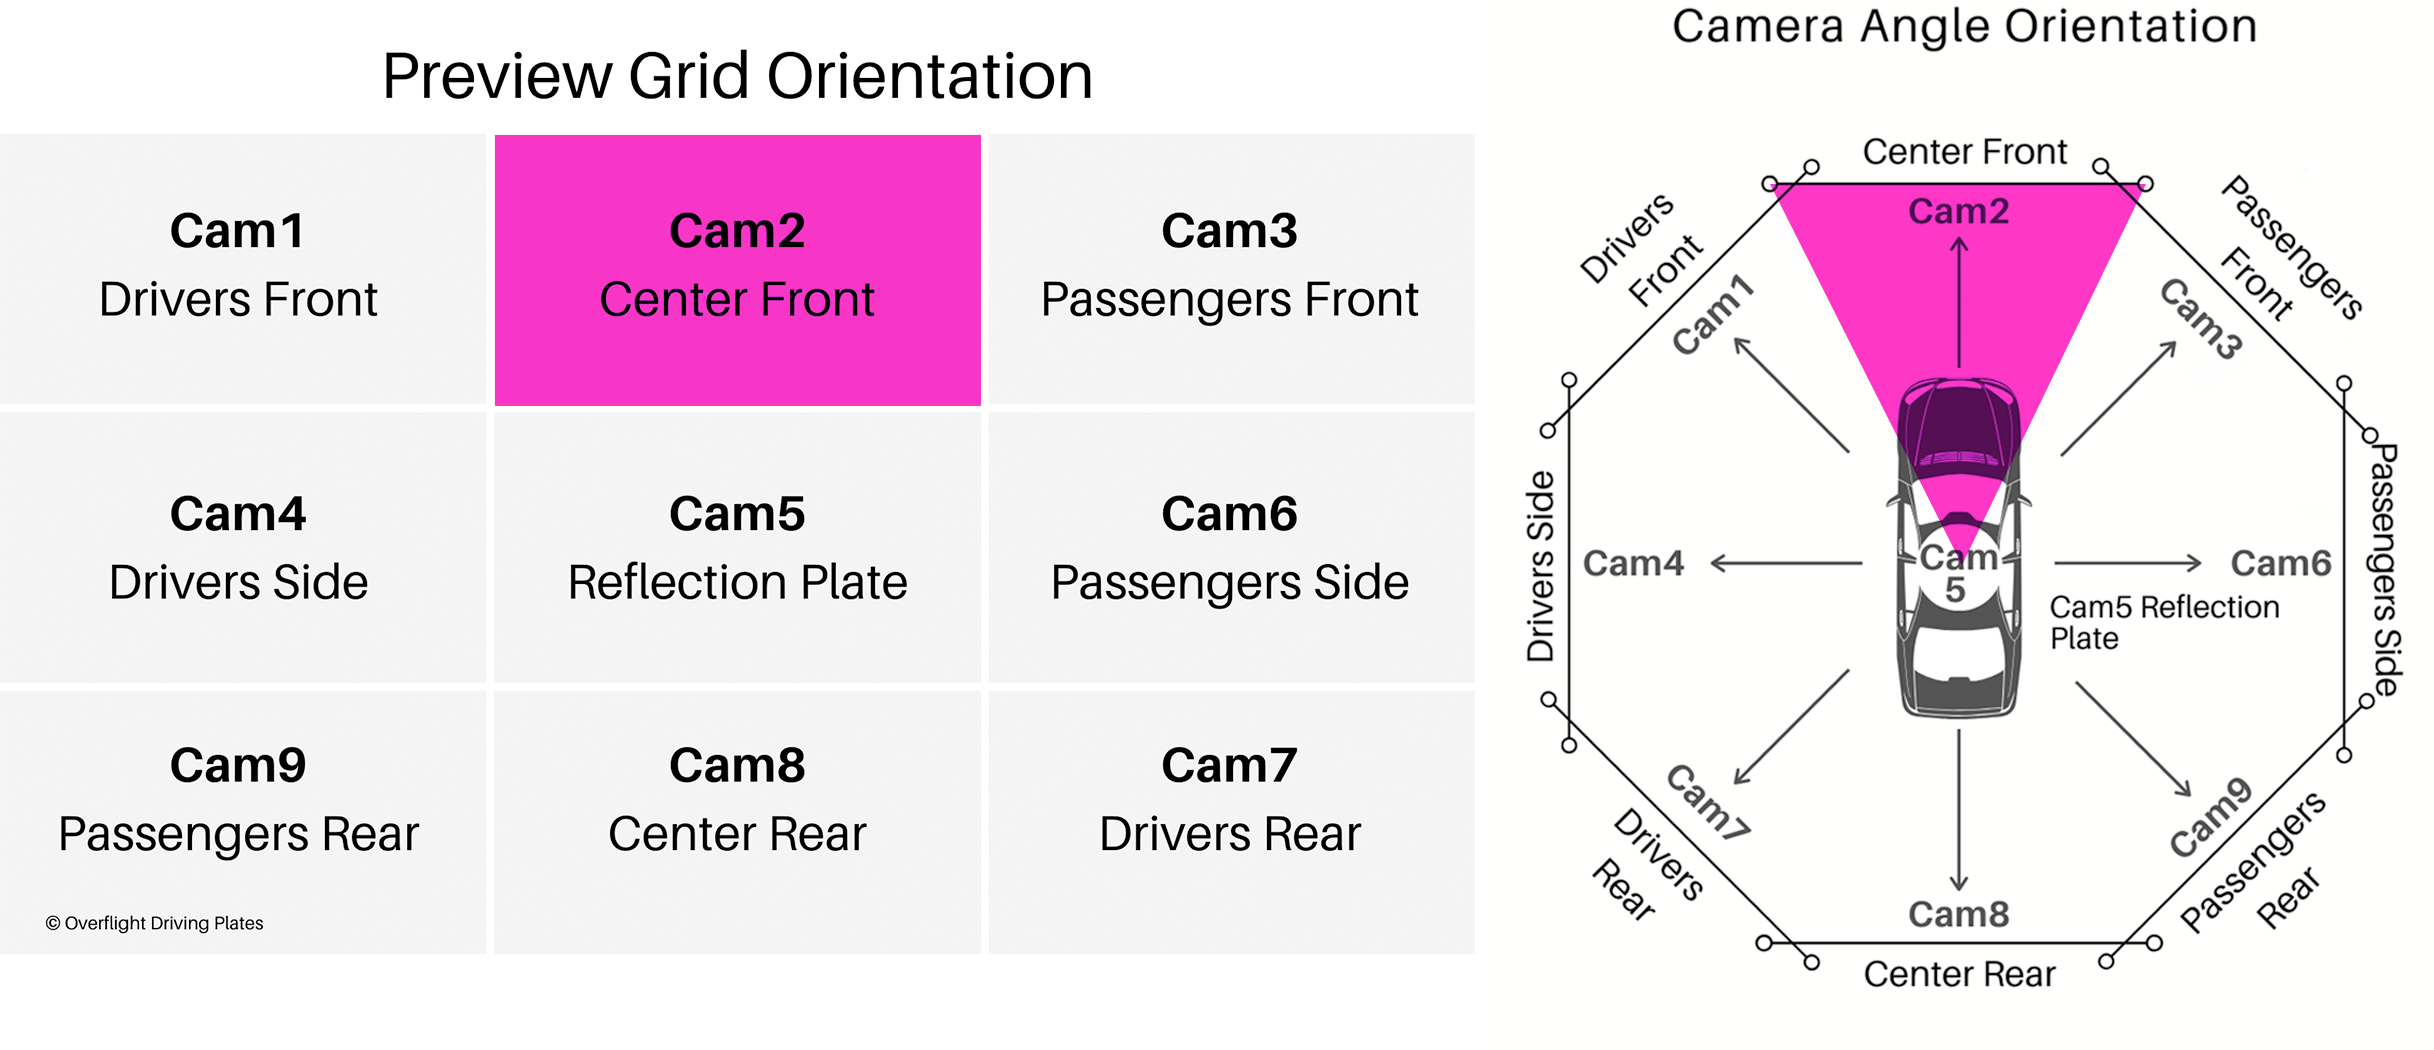 Horizontal Orientation Cam 2